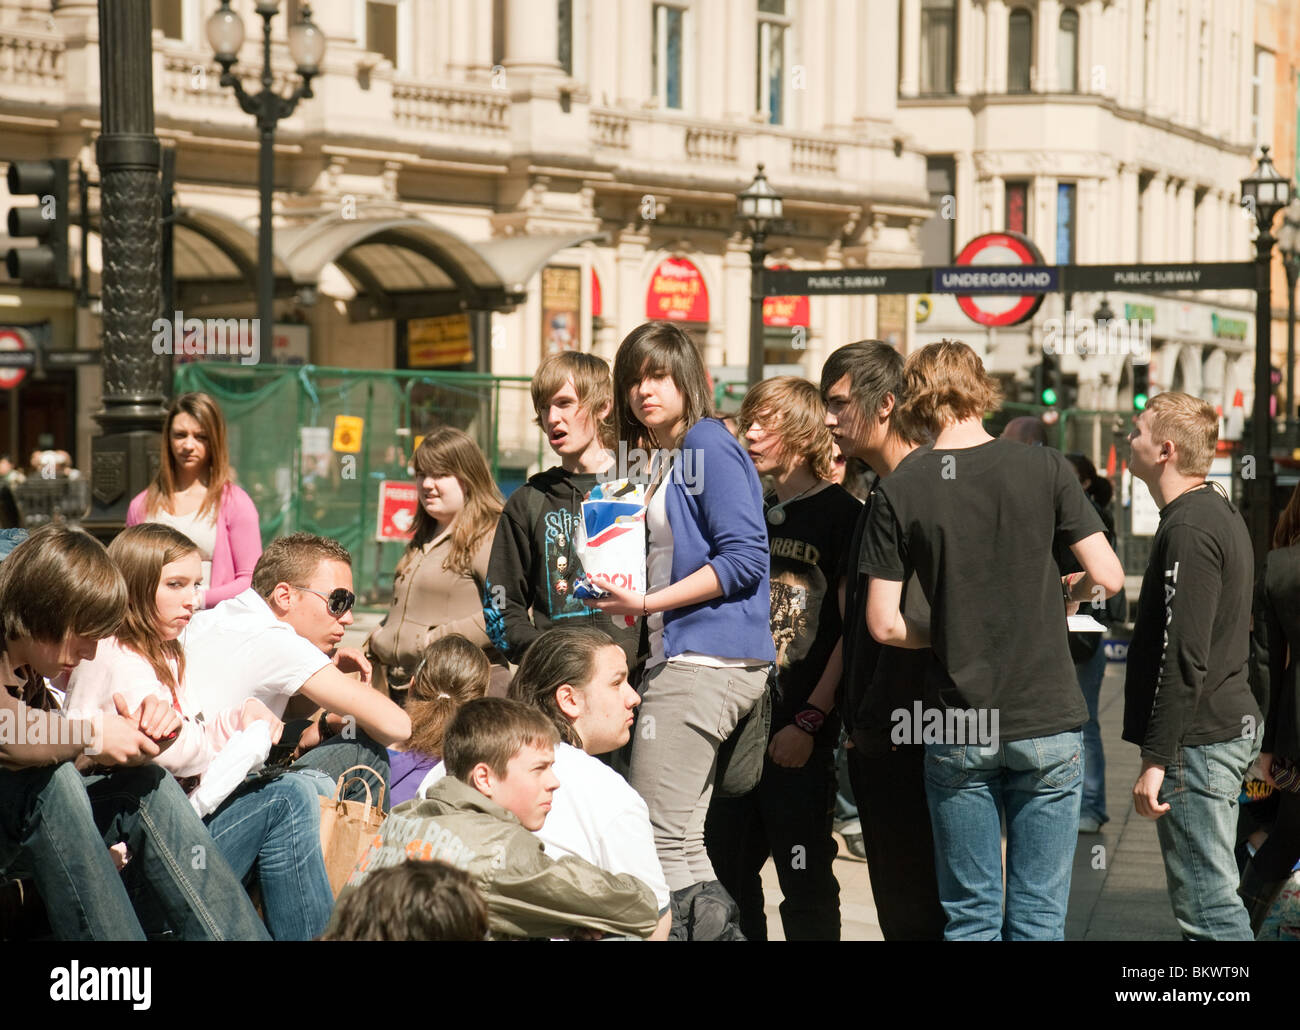 Teenagers in the crowd, Piccadilly Circus, Central London, UK - Stock Image